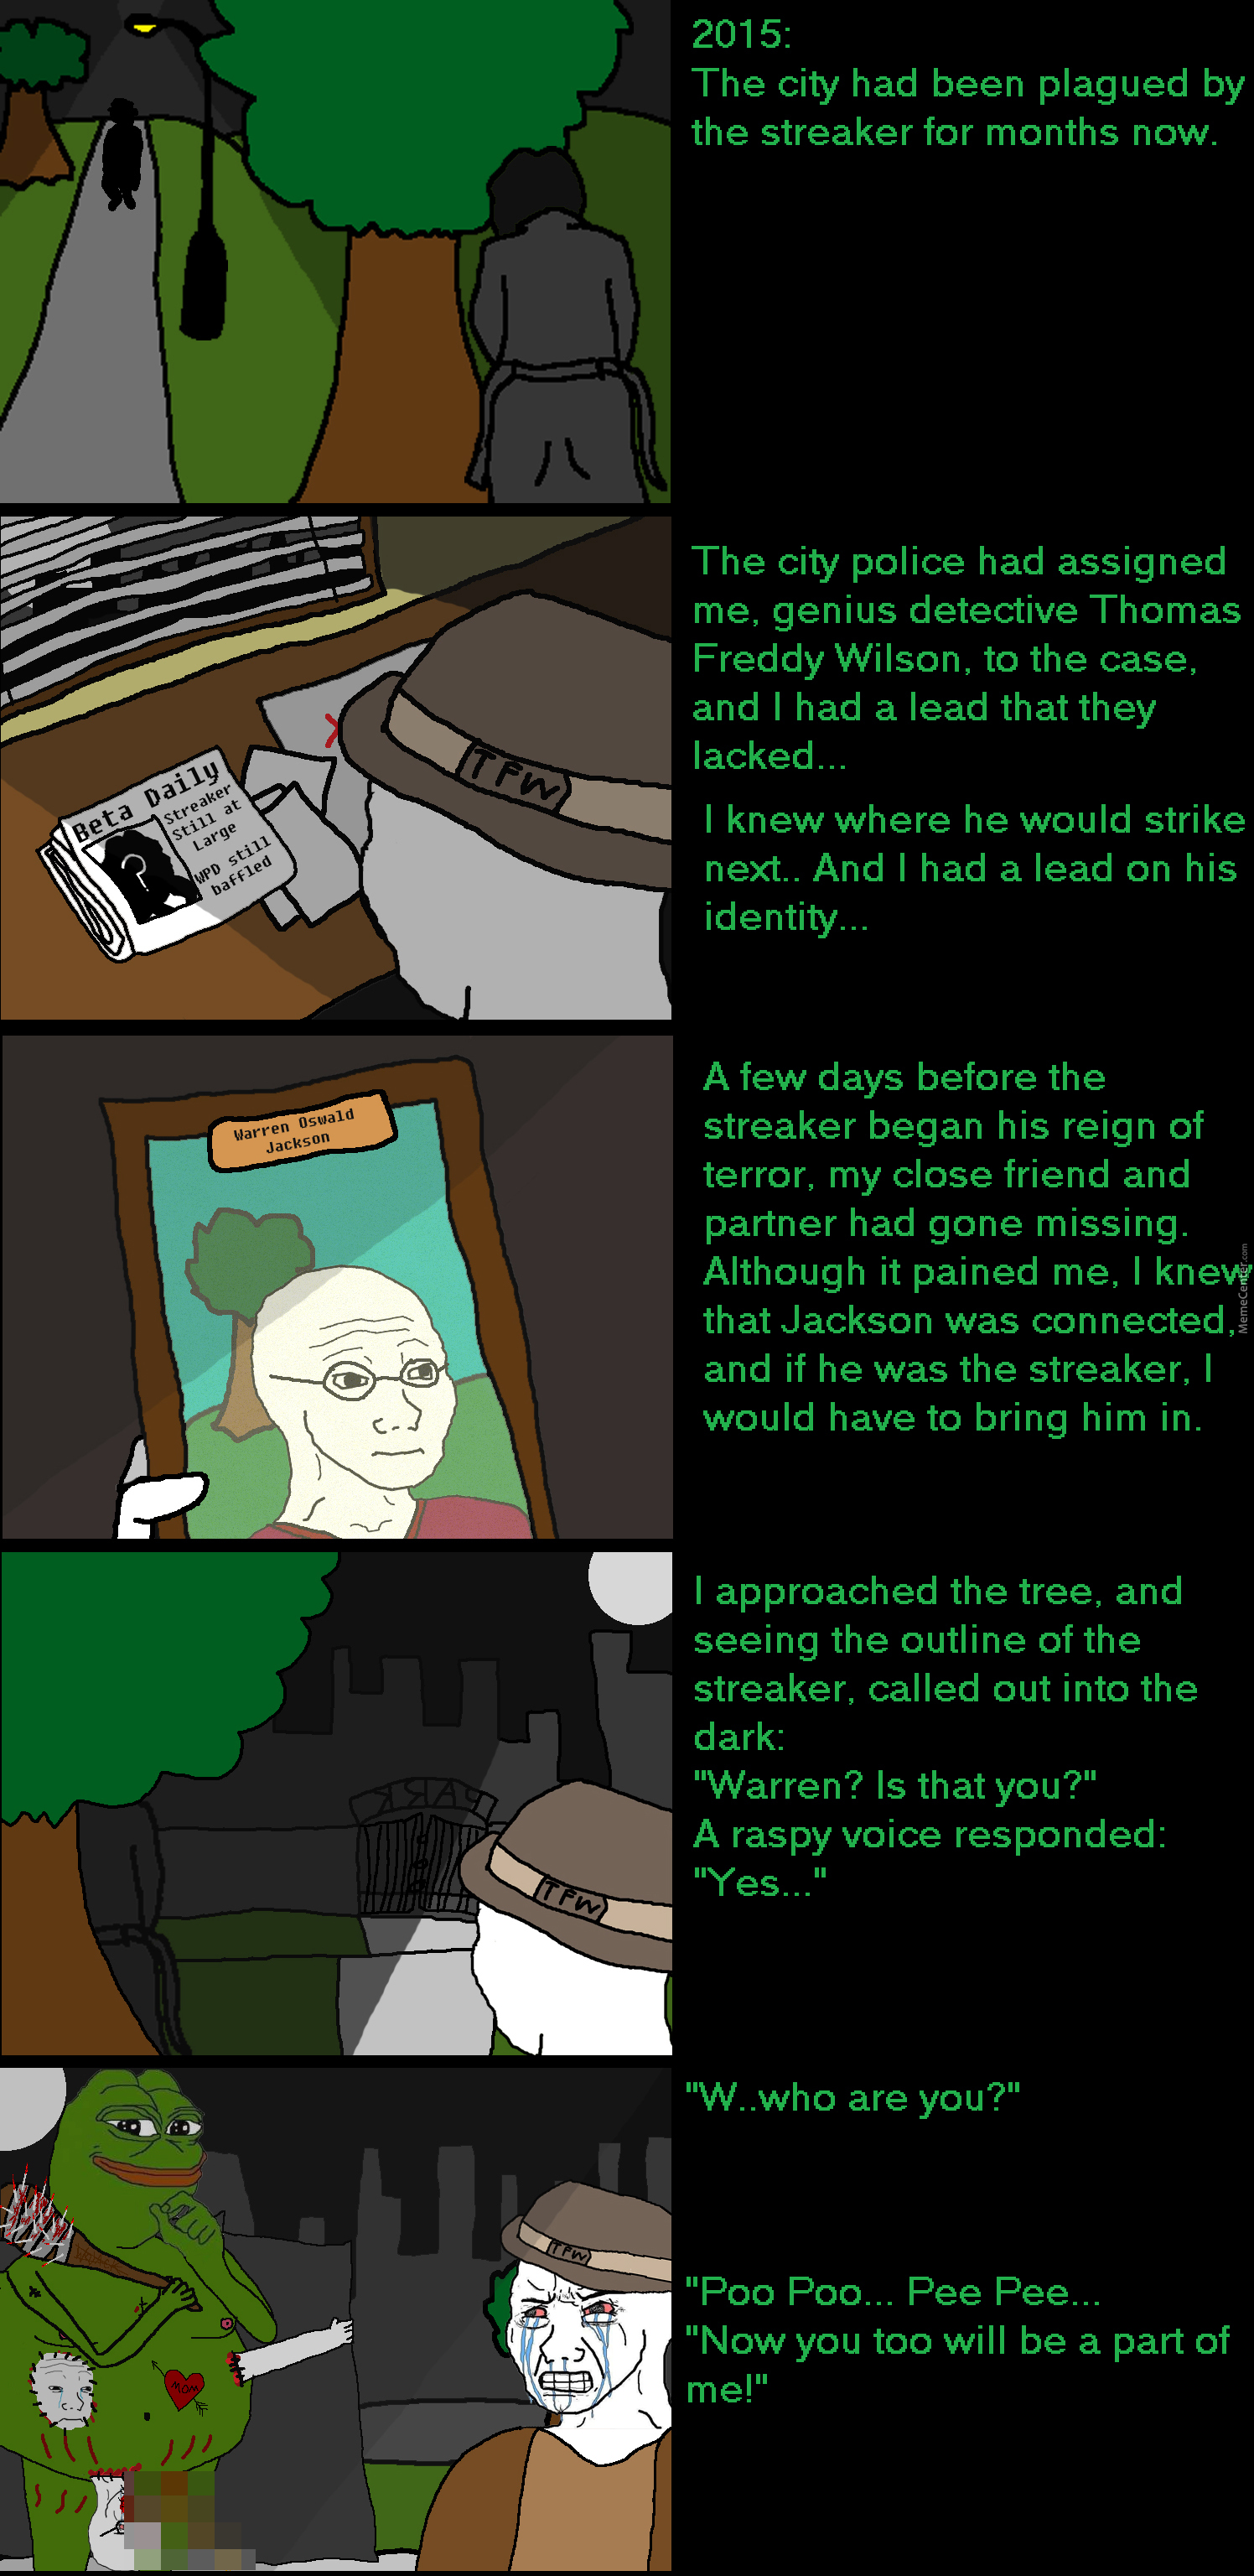 Pepe's Pee Poo: Part Of Me. by mysteryguy - Meme Center